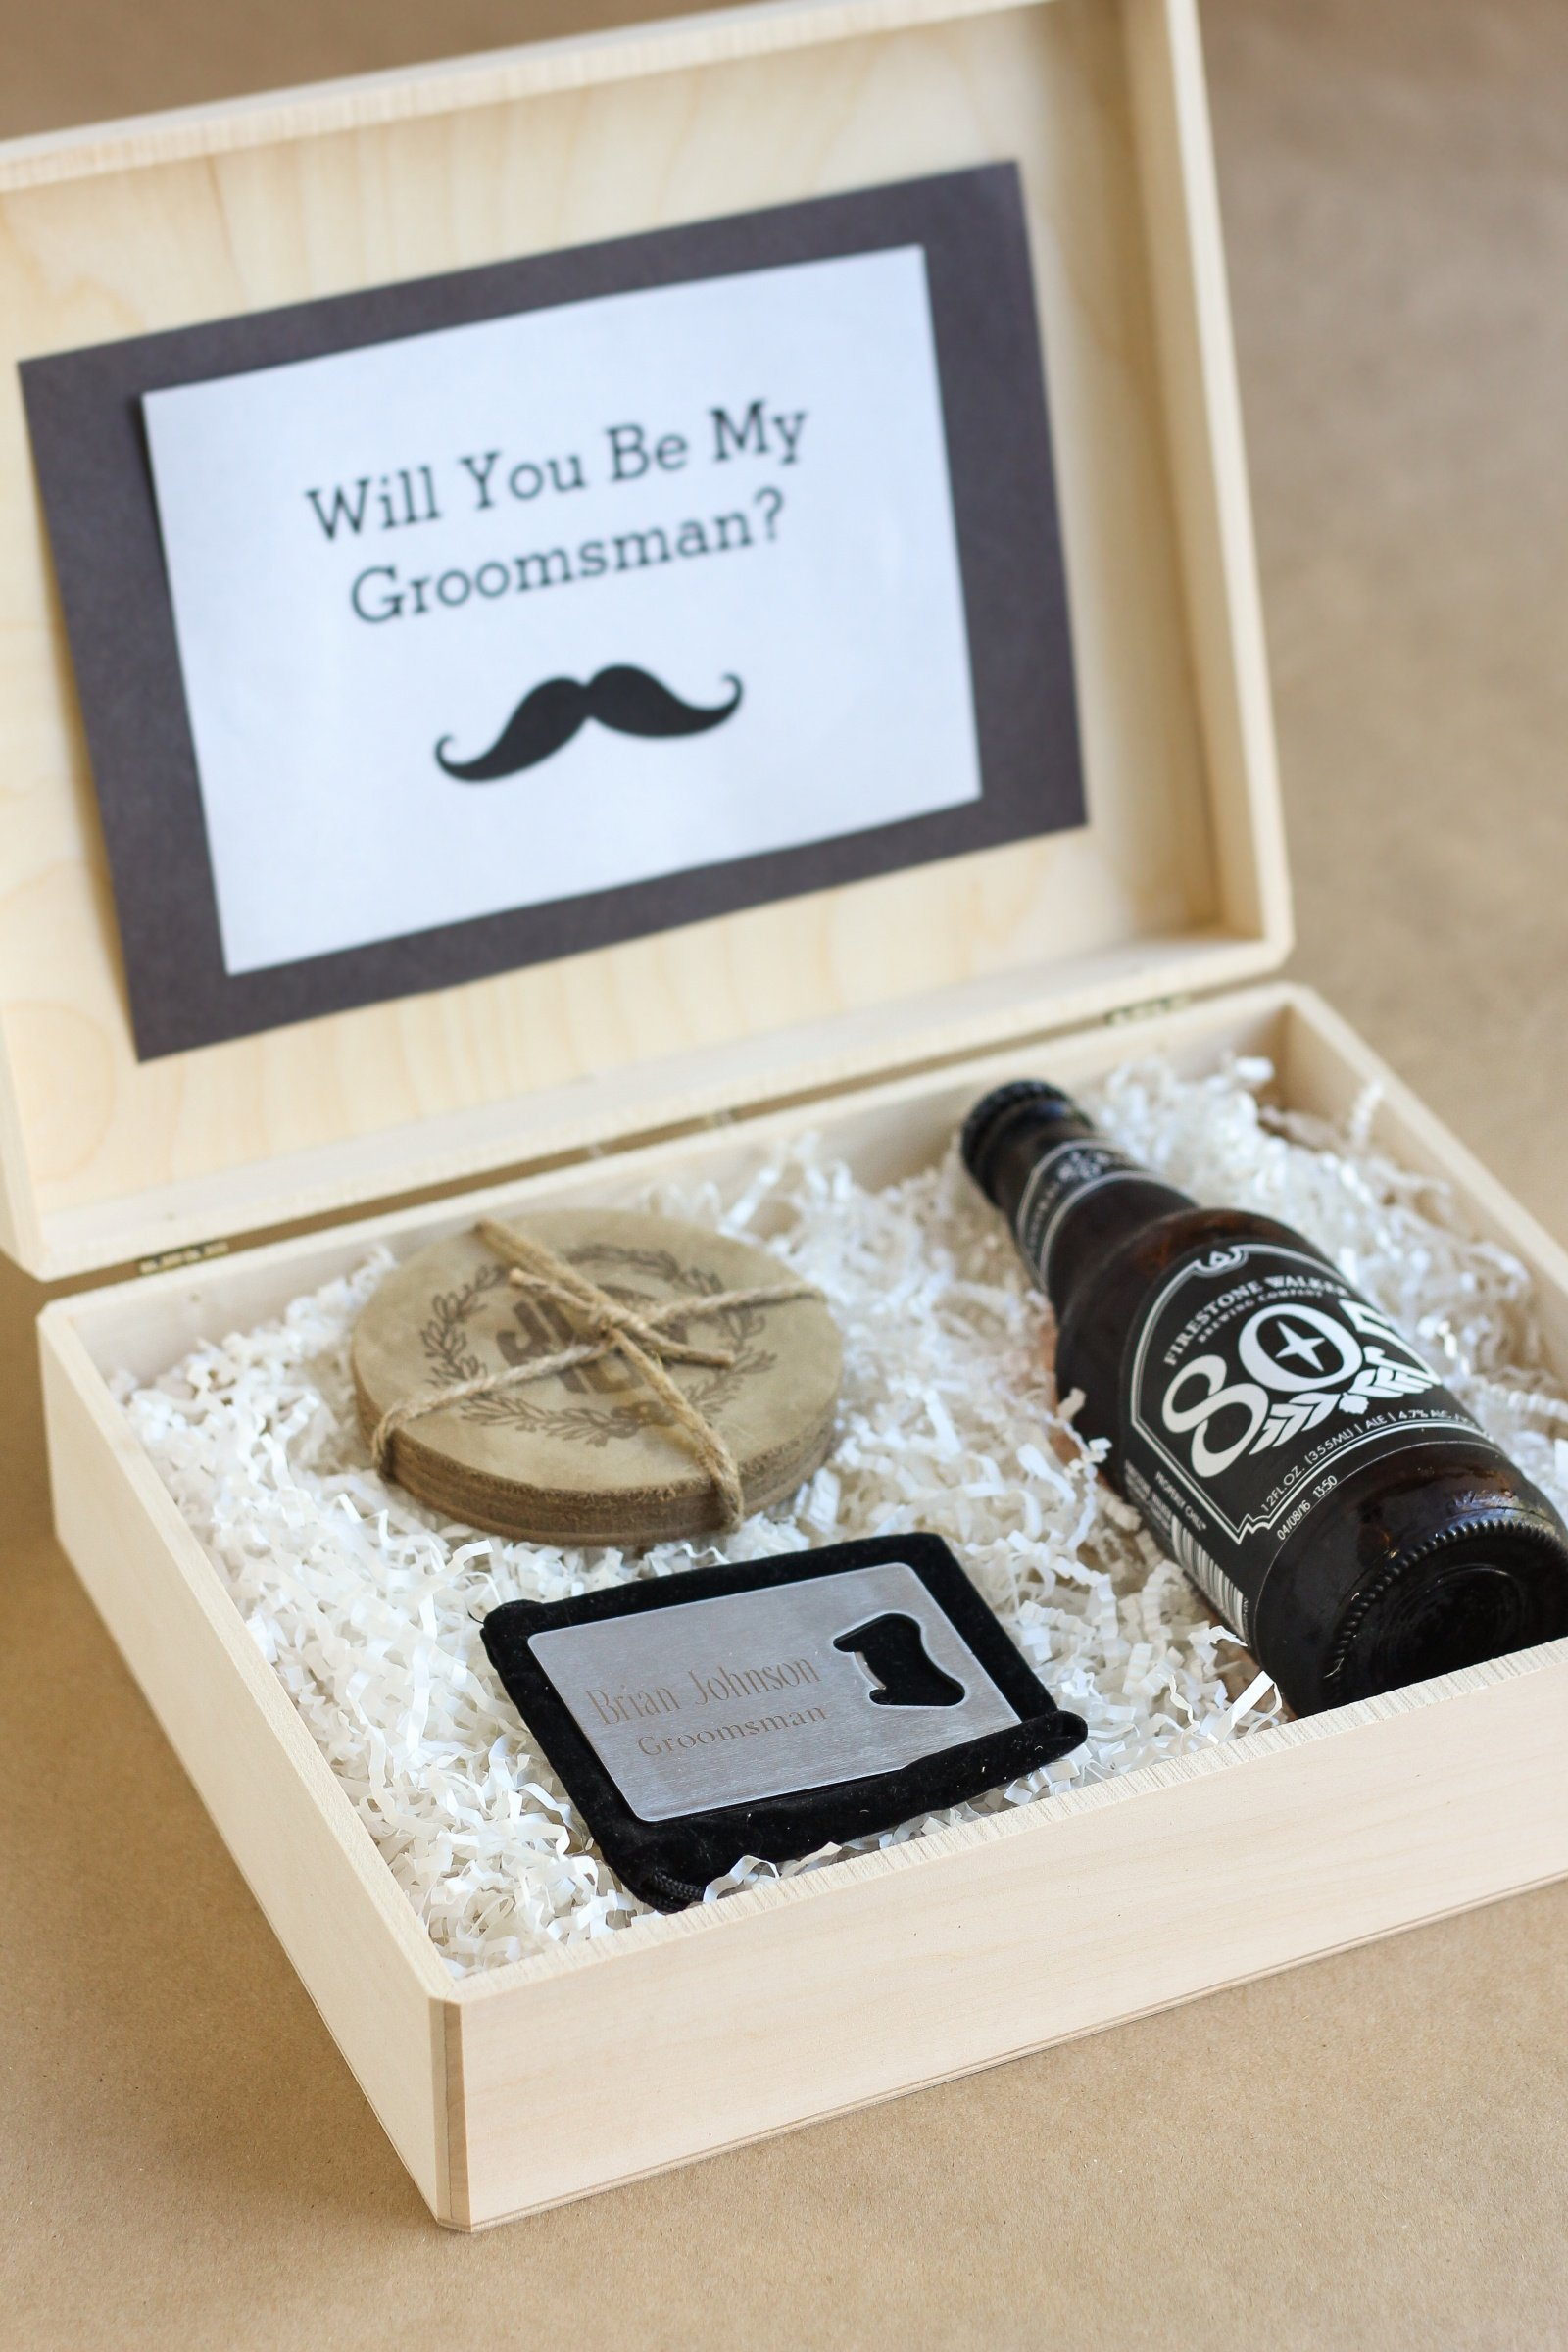 7 gift sets to pop the question will you be my groomsmen beau image credit beau coup junglespirit Image collections